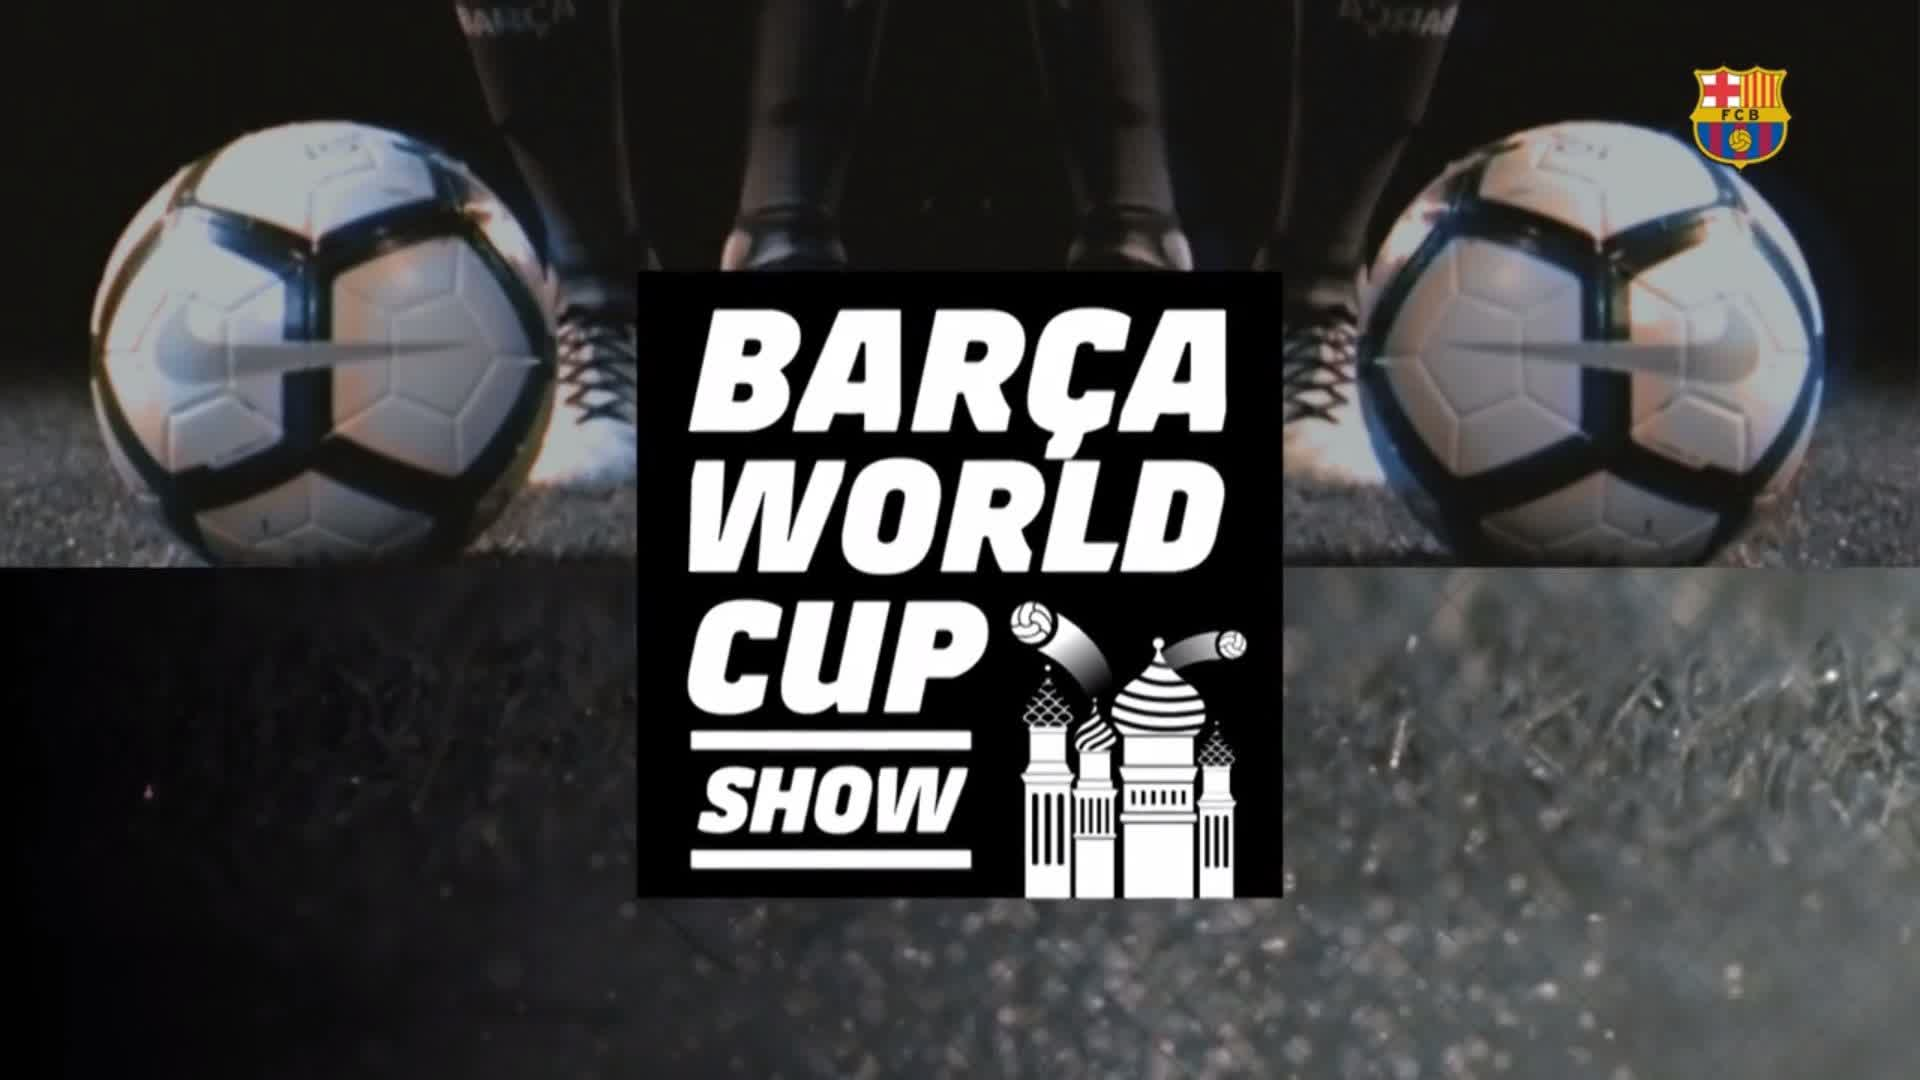 For World Cup stress relief �� try the #BarçaWorldCup show! �� Full video: https://t.co/hyEZcvuTee https://t.co/XOjiZIEXvF